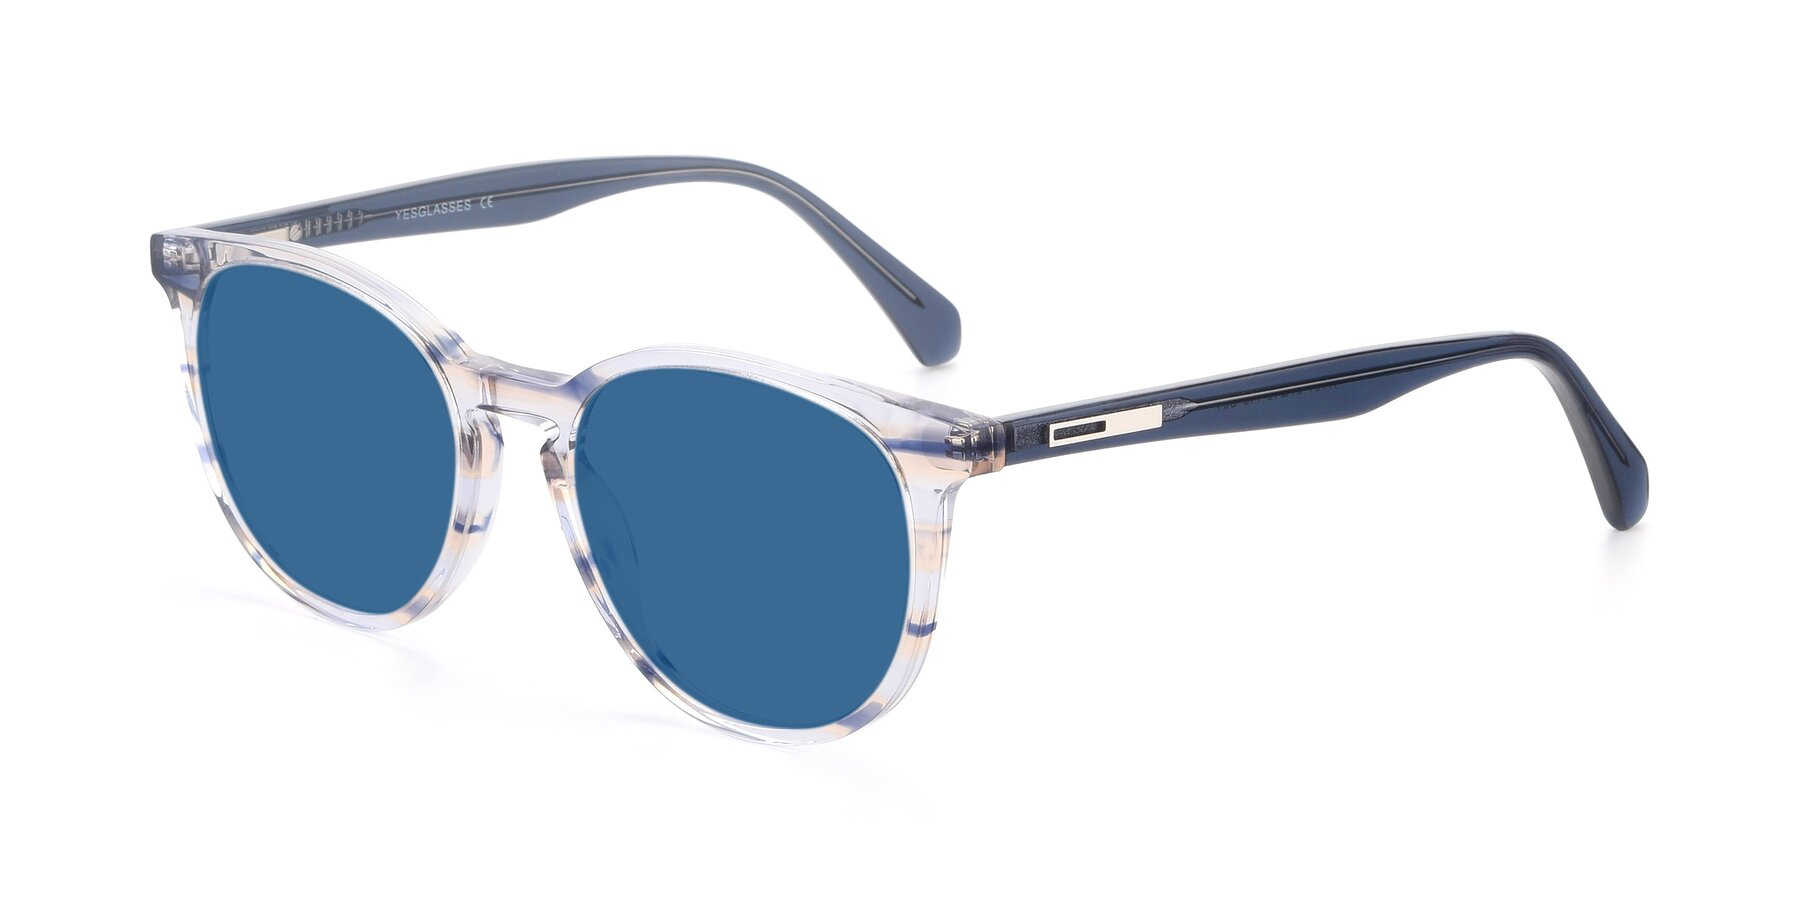 Angle of 17721 in Stripe Blue with Blue Tinted Lenses